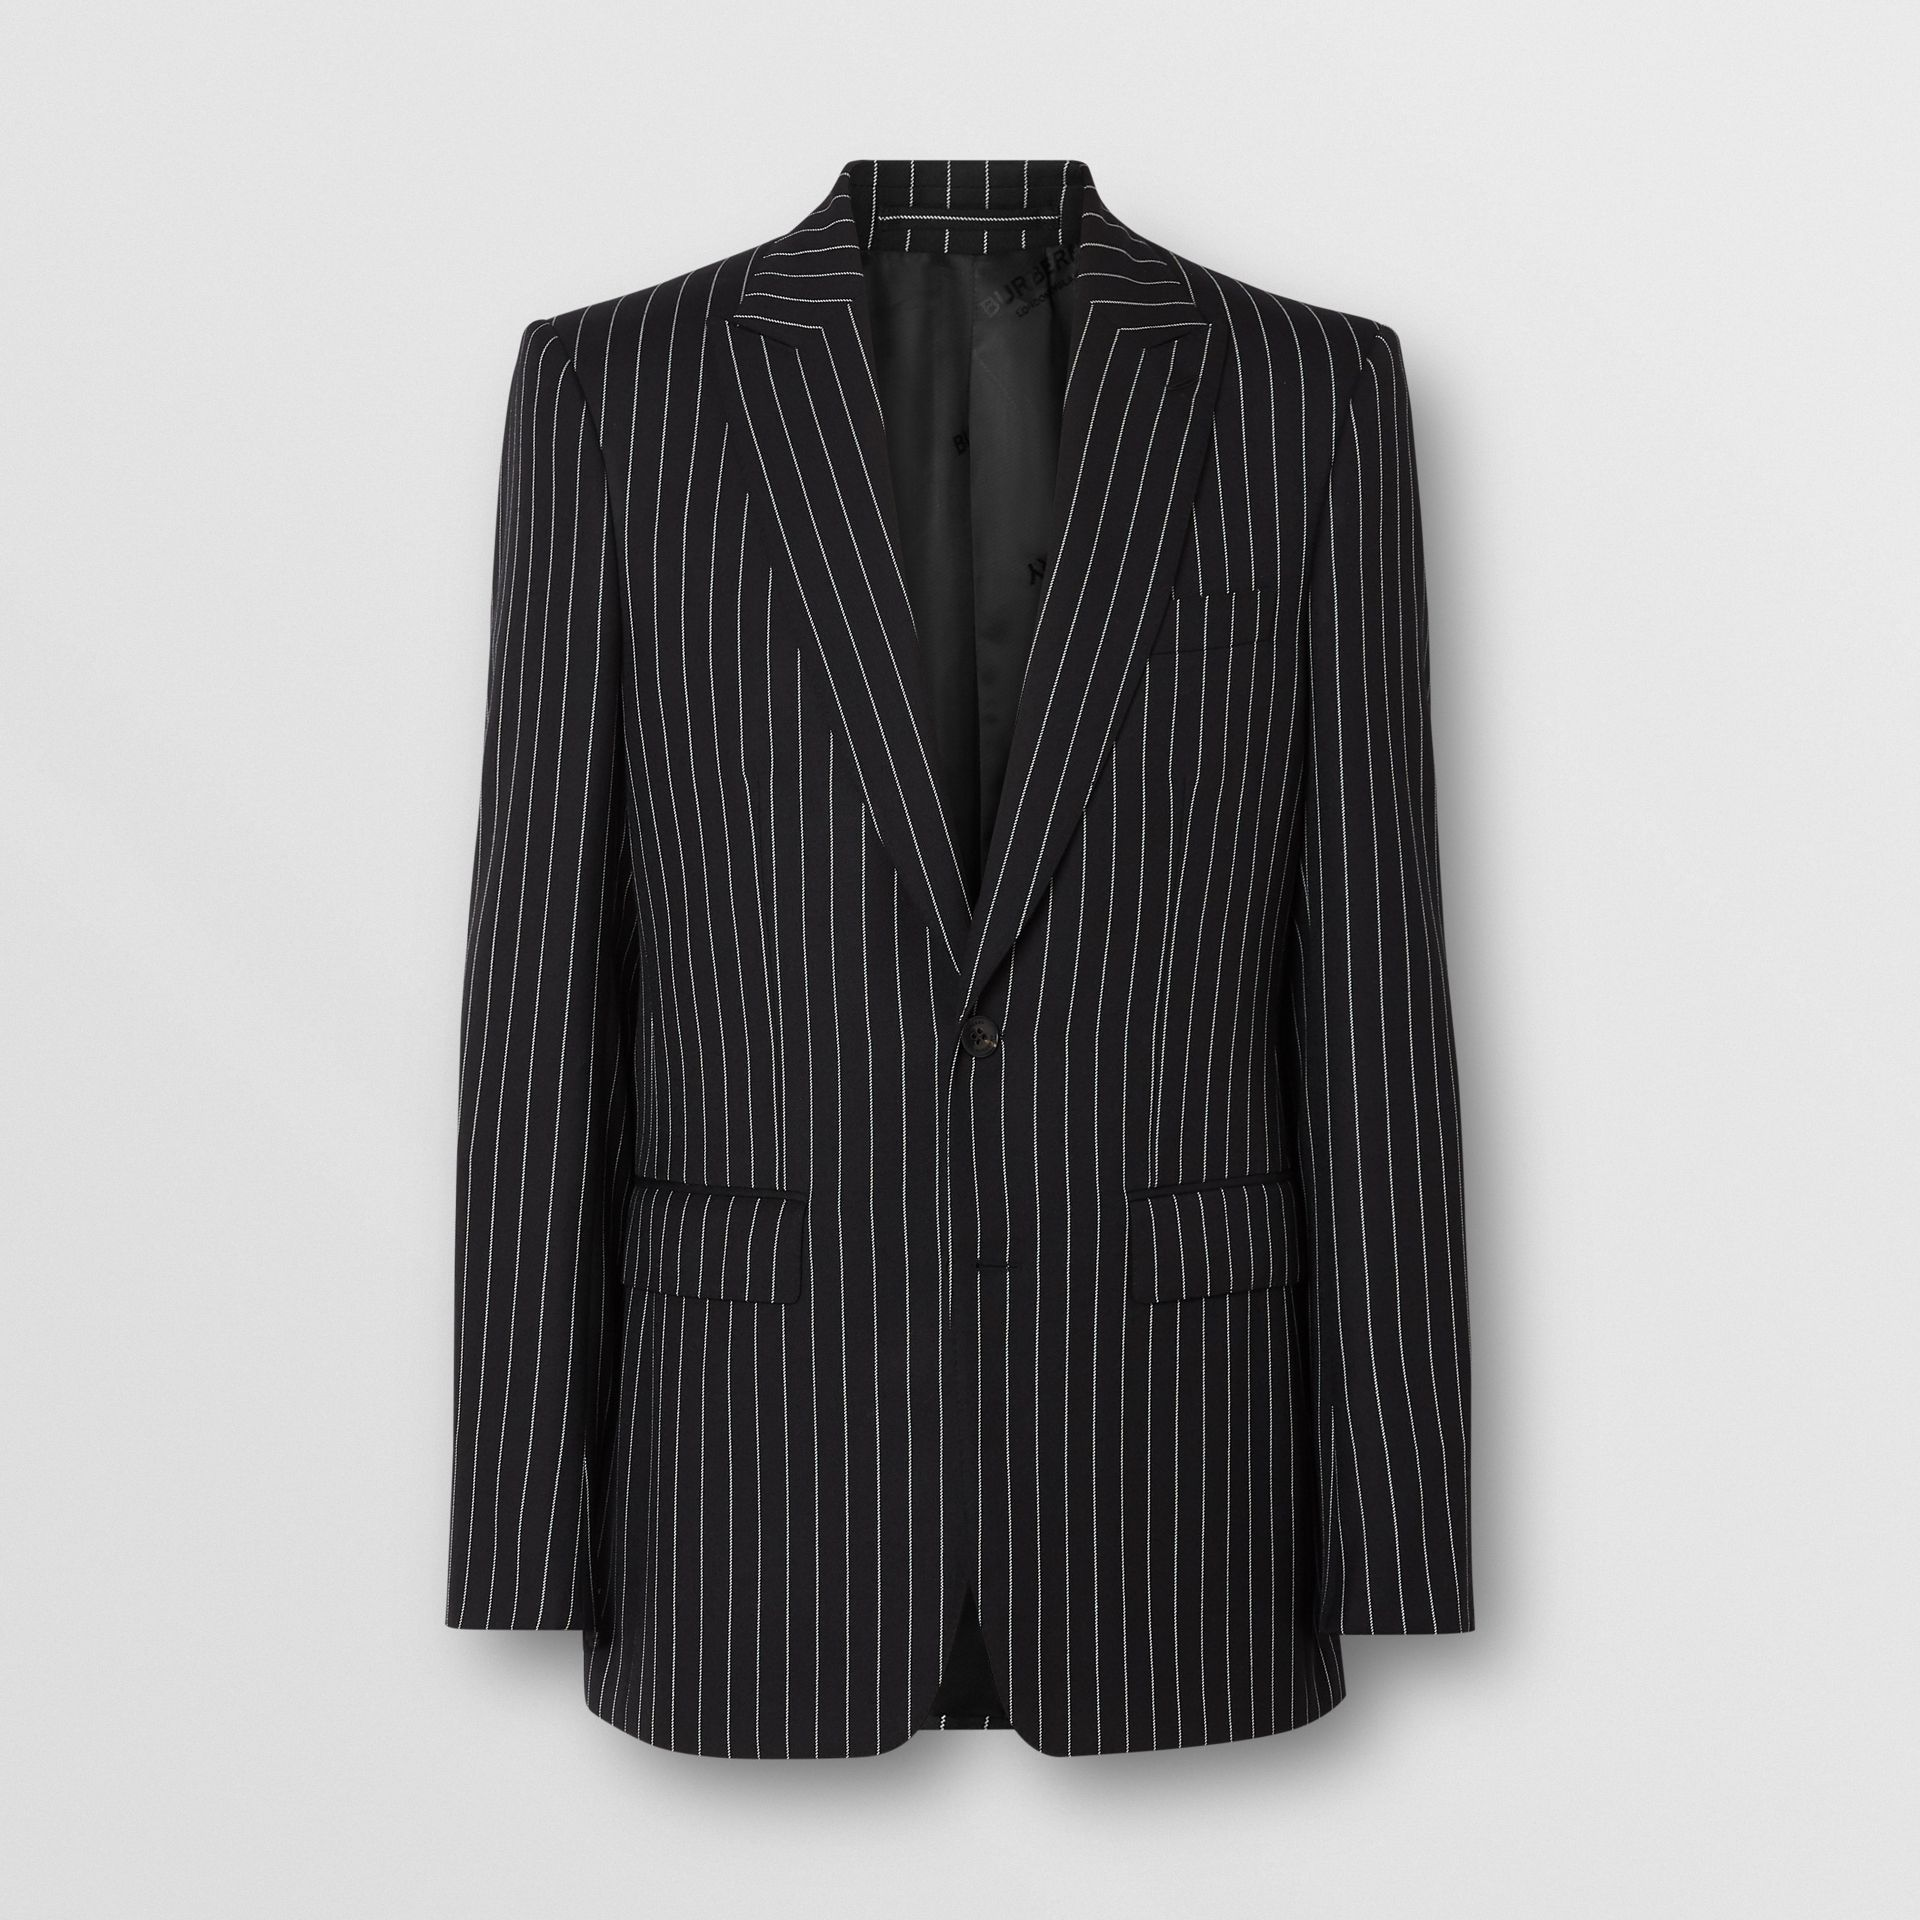 English Fit Pinstriped Wool Suit in Black - Men | Burberry Australia - gallery image 3